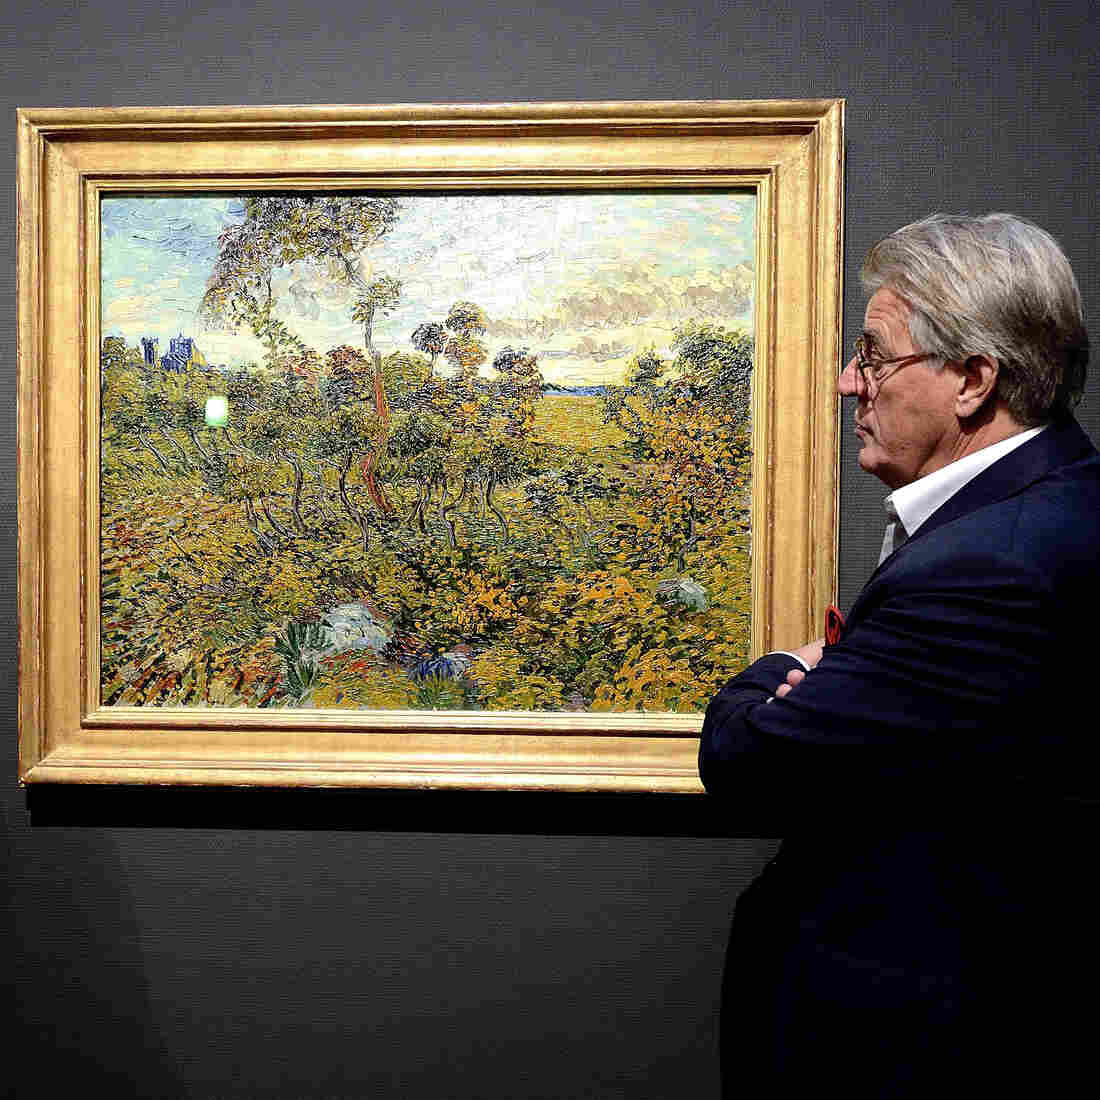 Museum director Alex Rueger (L) and Dutch artist Jeroen Krabbe stand in front of Vincent van Gogh's long-lost Sunset at Montmajour at the Van Gogh Museum in Amsterdam. The 1888 landscape painting from the height of the Dutch master's career had been abandoned for years in a Norwegian attic on the belief that it was a forgery.